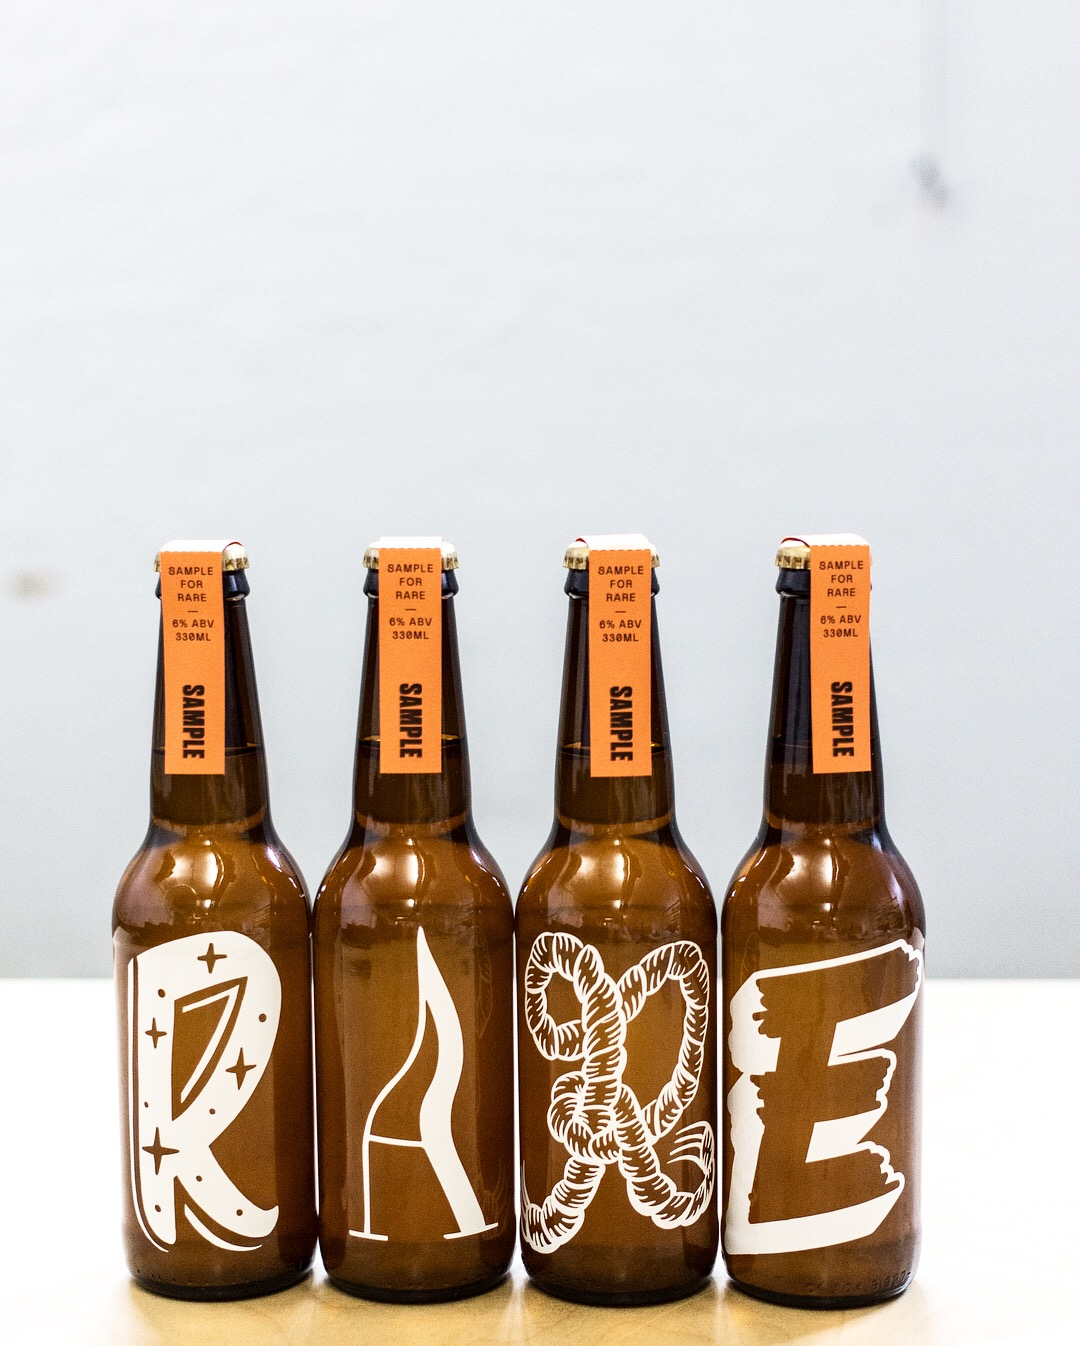 GEMMA O'BRIEN xMADDY RITCHIE - Lettering designs for RARE festival. Vinyl stickers on beer bottles; assisted in the design, application of stickers + photography.Sydney, Australia